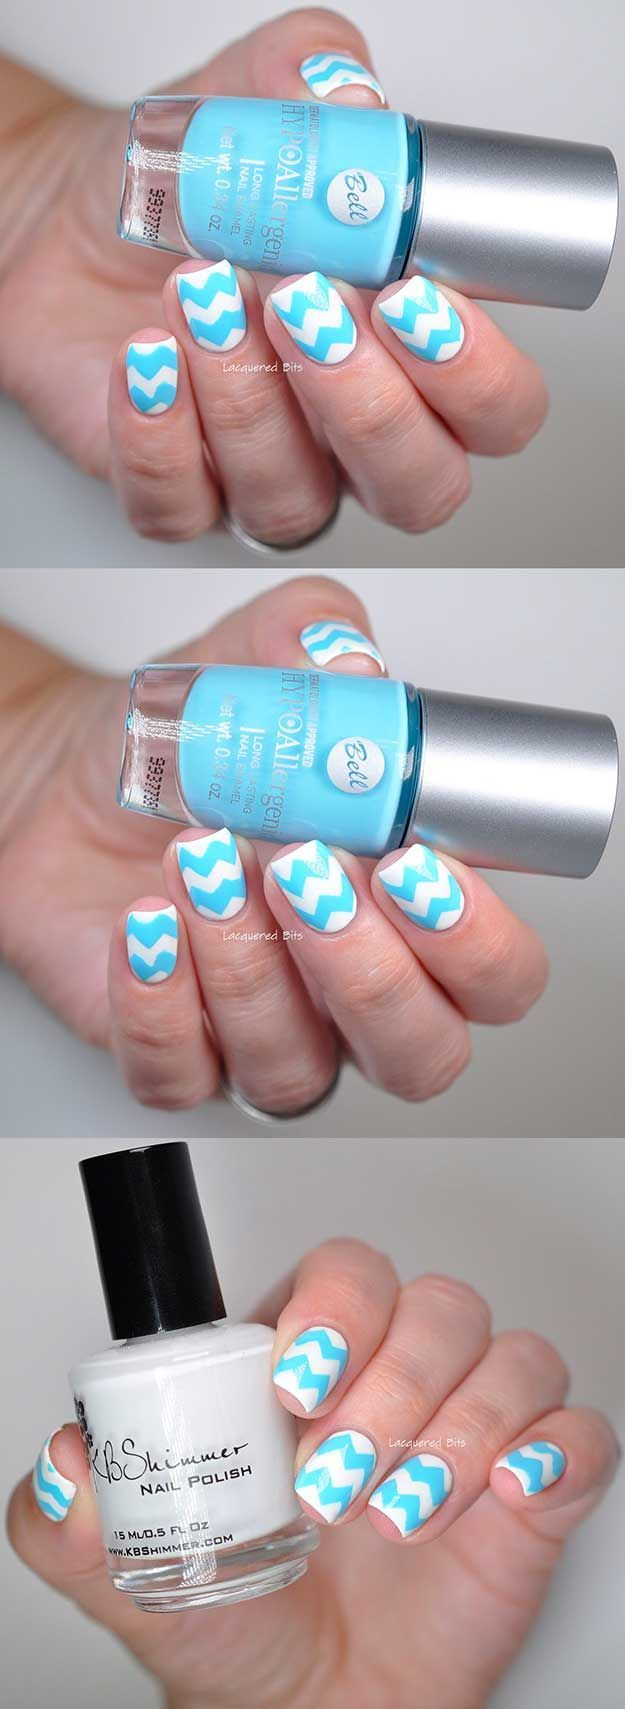 Chevron Nail Art Ideas - Blue & White Chevron Manicure - Best Chevron Nail Art Designs and Ideas On Pinterest, Chevron Nail Designs Step By Step, Chevron French Nails, Gel Nails, Chevron Tutorial For Toes, DIY Nailart For French Tips, Designs For Manicures, Negative Space Uses, and How To Do Chevron Polka Dots. Simple, Awesome, and Gorgeous Chevron Nail Art Ideas You Will Love With Amazing Colors Like Coral, Silver, And Grey. Try Chevon With Stripes For A Fun Look On Valentines Day Or For Su